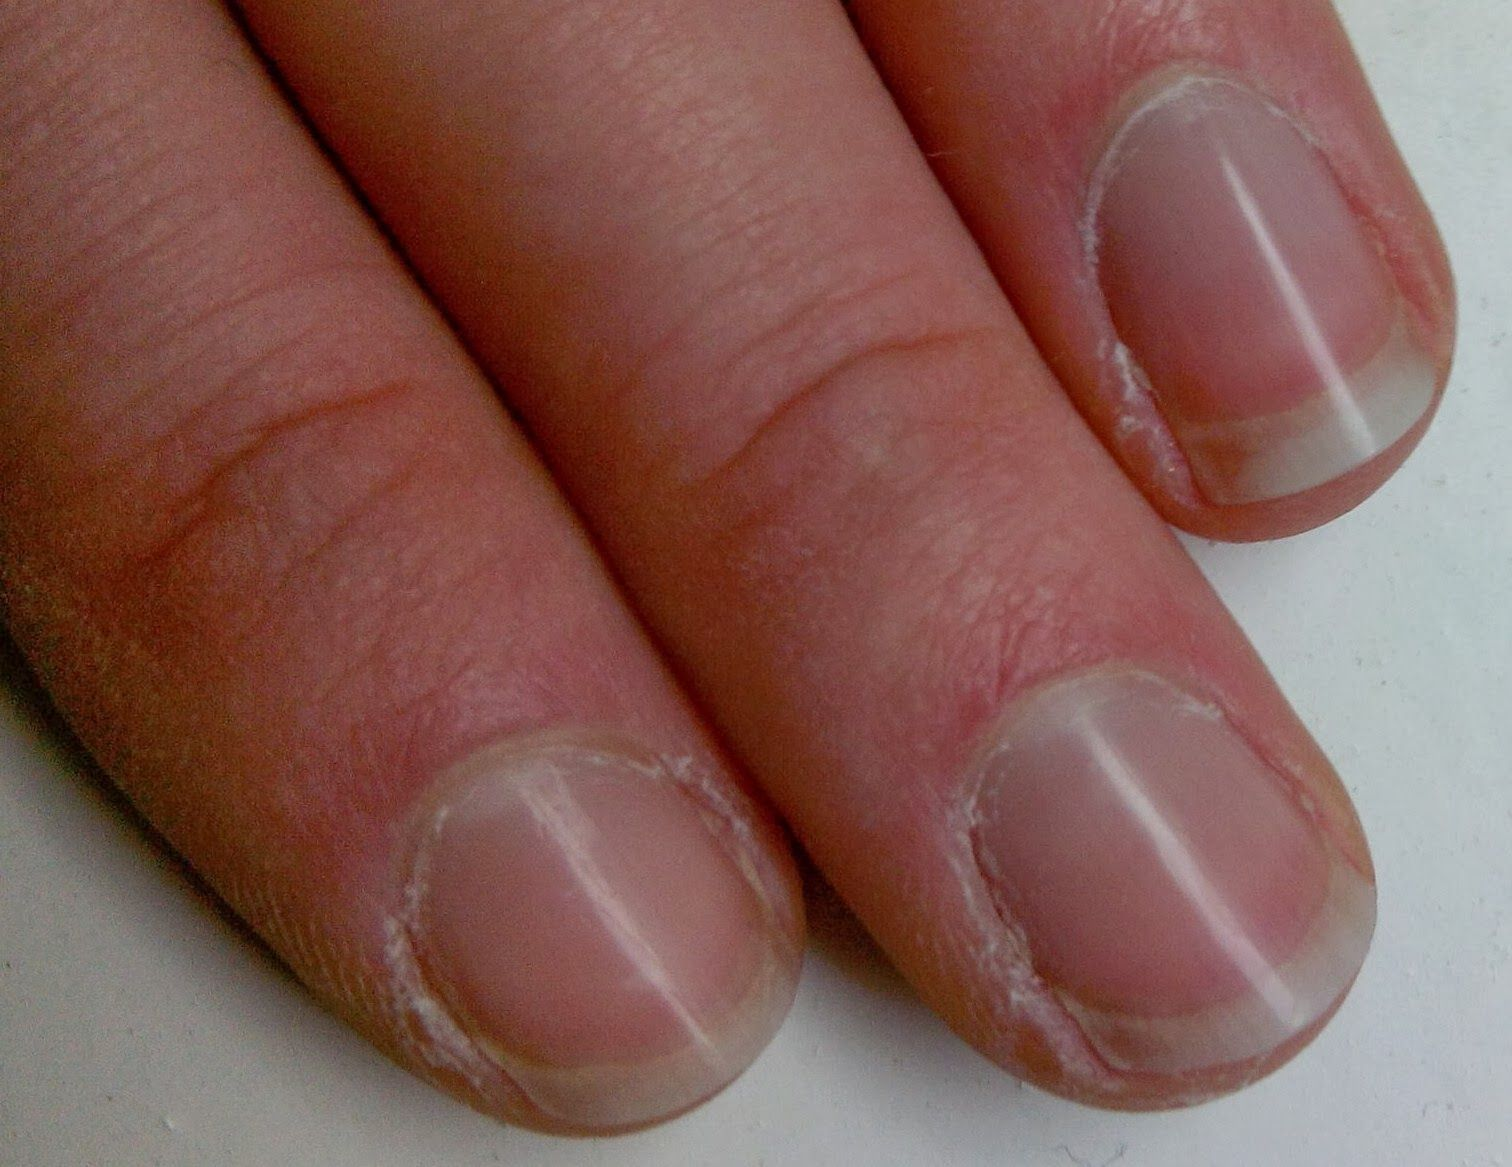 Thriving in Belgium with a Paleo Lifestyle: Take care of your nails {shine them!}